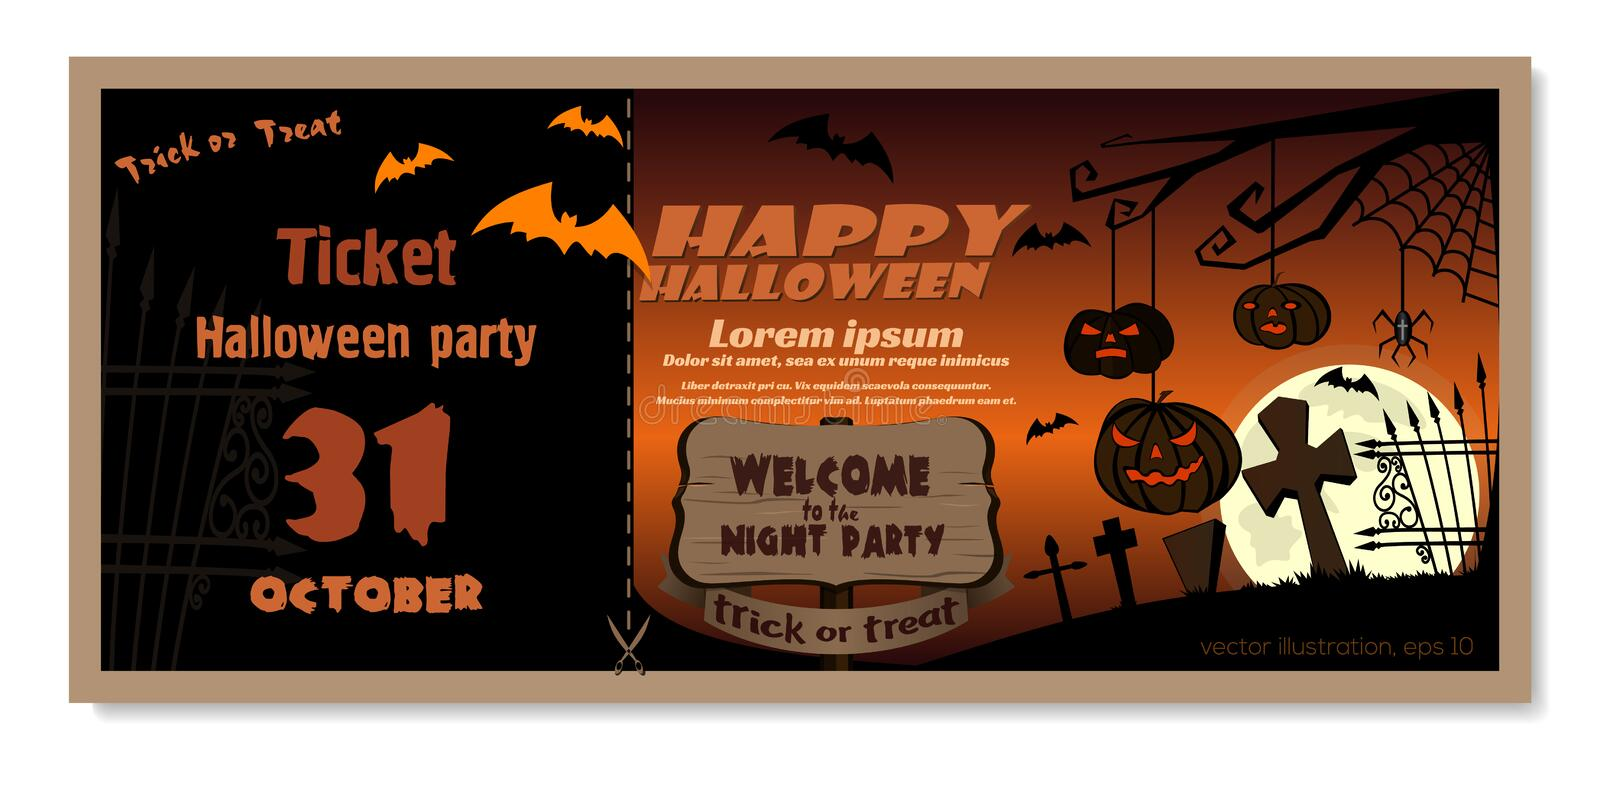 Invitation card template for Halloween night party royalty free illustration